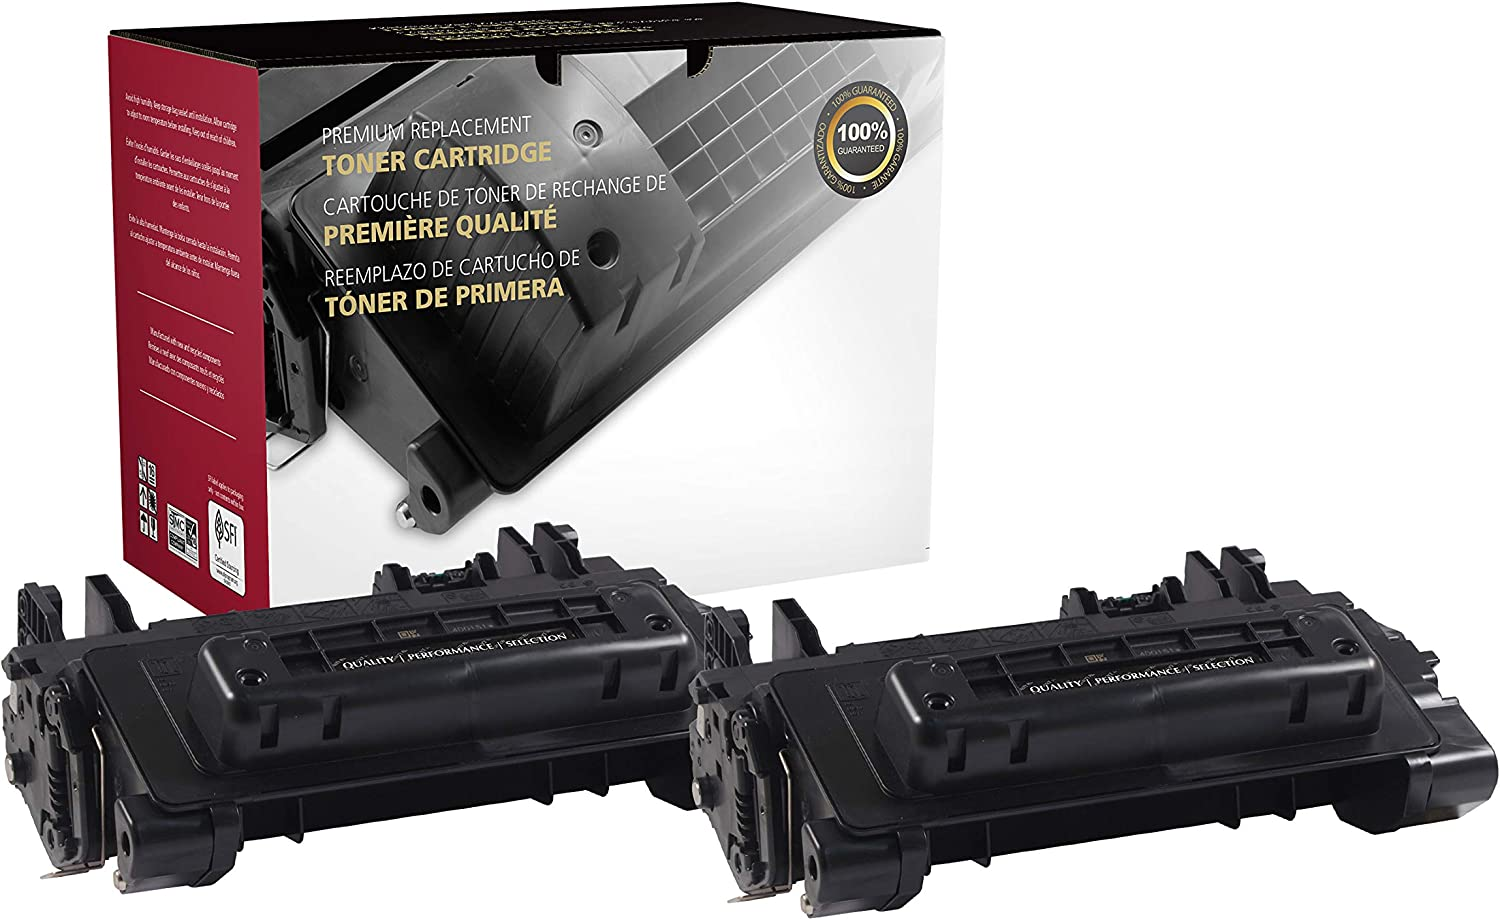 Inksters Remanufactured Toner Cartridge Replacement for HP 81A Extended Yield CF281A(J) for Laserjet Enterprise M604DN M604N M605DN M605N M605X M606DN M606X (Black) - 2 Pack